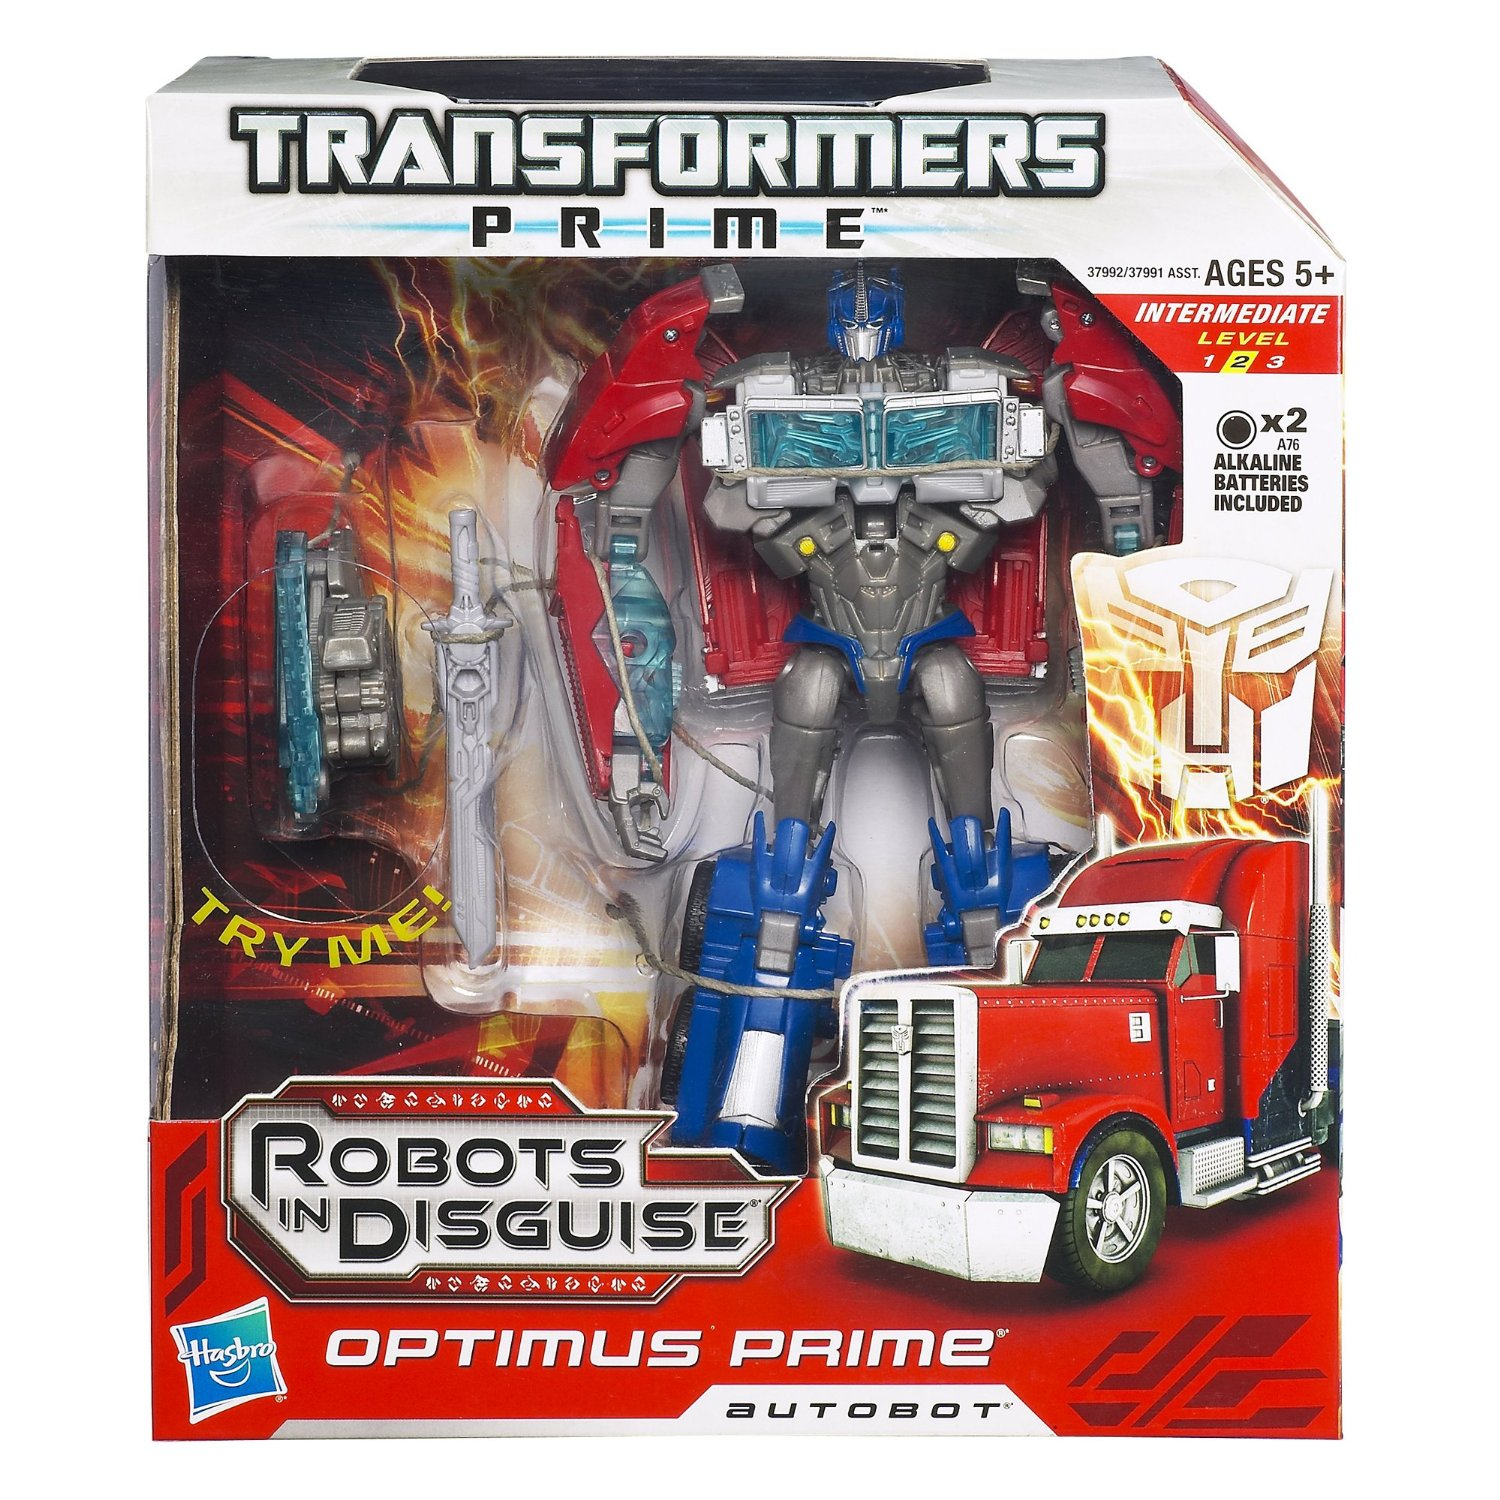 Transformers Prime Robots In Disguise - Autobot Optimus Prime Figure NEW